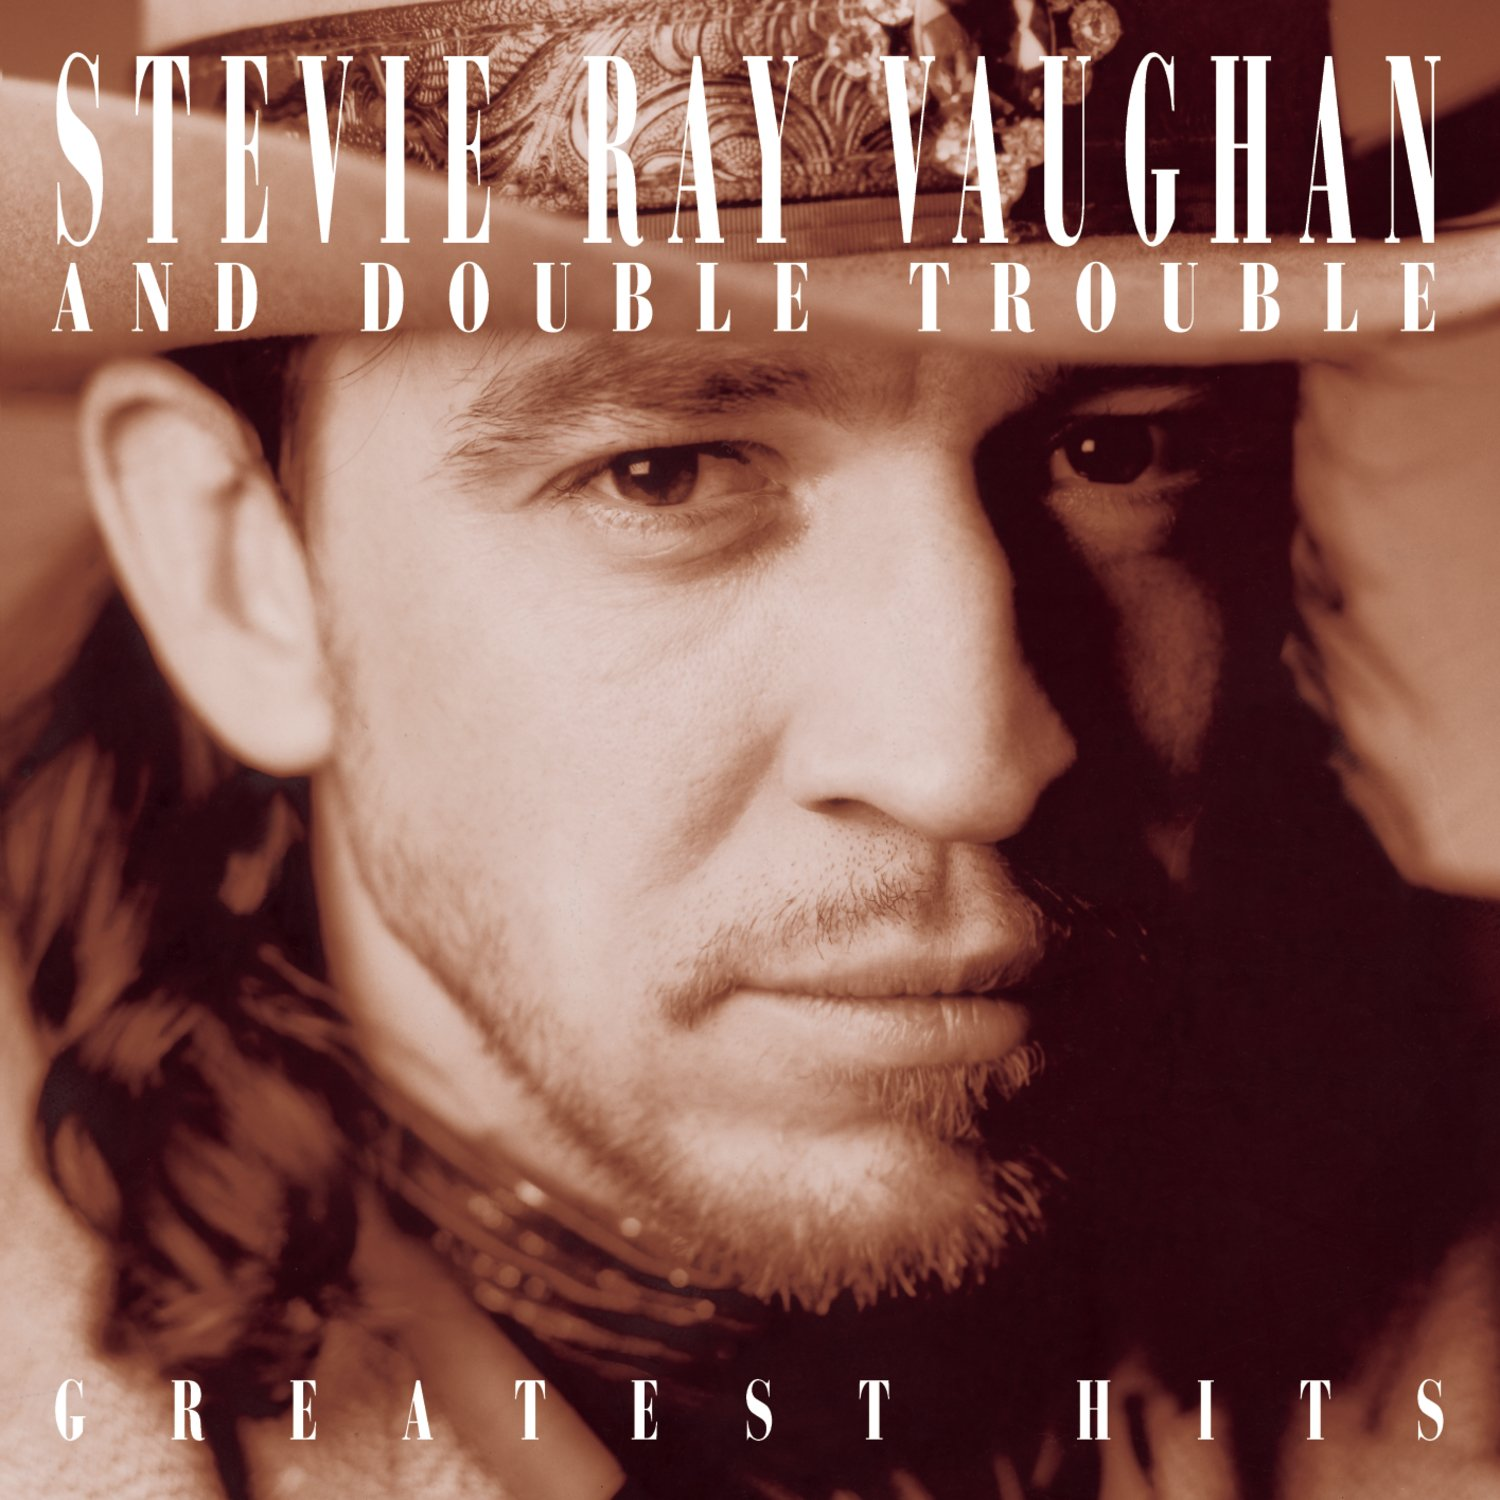 Stevie Ray Vaughan and Double Trouble: Greatest Hits by VAUGHAN,STEVIE RAY & DOUBLE TROUBLE